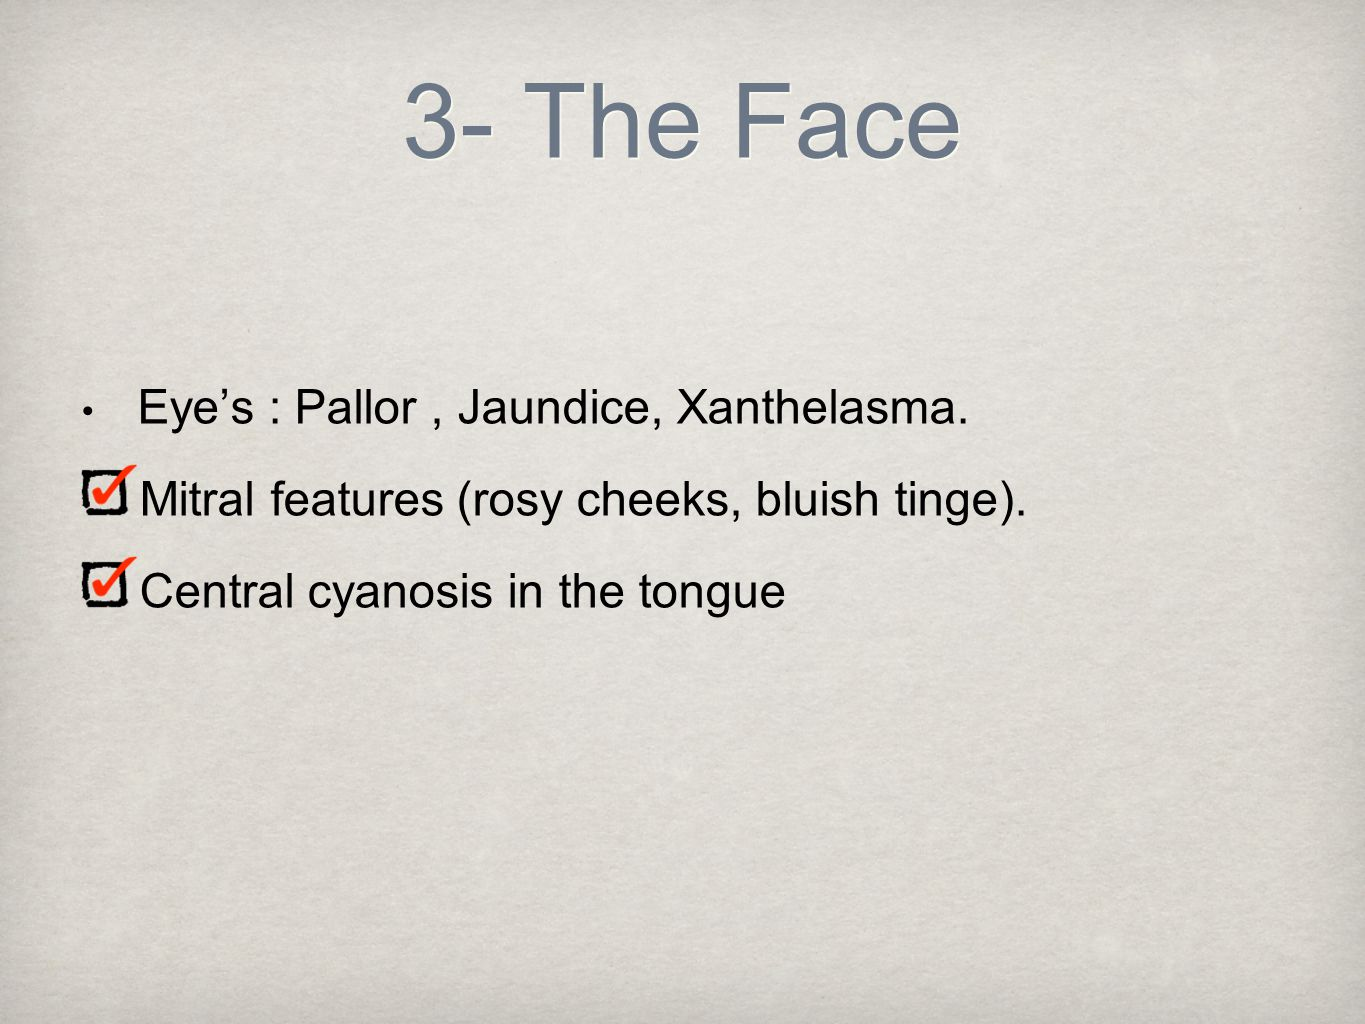 3- The Face Eye's : Pallor, Jaundice, Xanthelasma. Mitral features (rosy cheeks, bluish tinge). Central cyanosis in the tongue